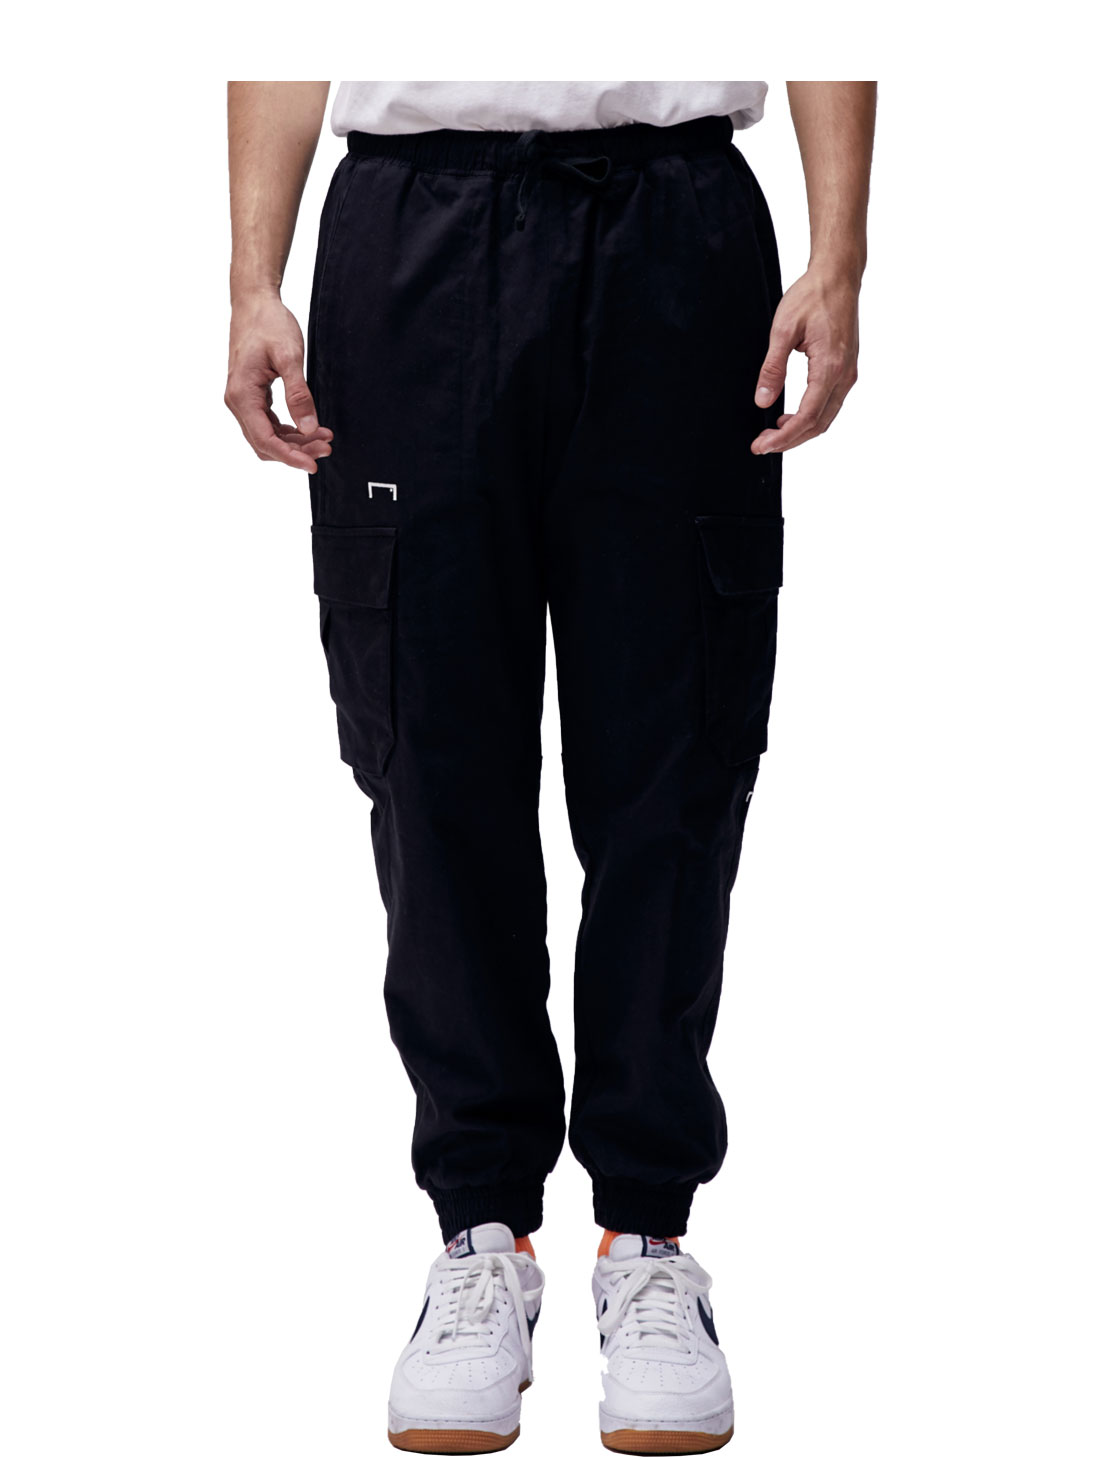 GOALSTUDIO (Sold Out) CARGO JOGGER PANTS - BLACK